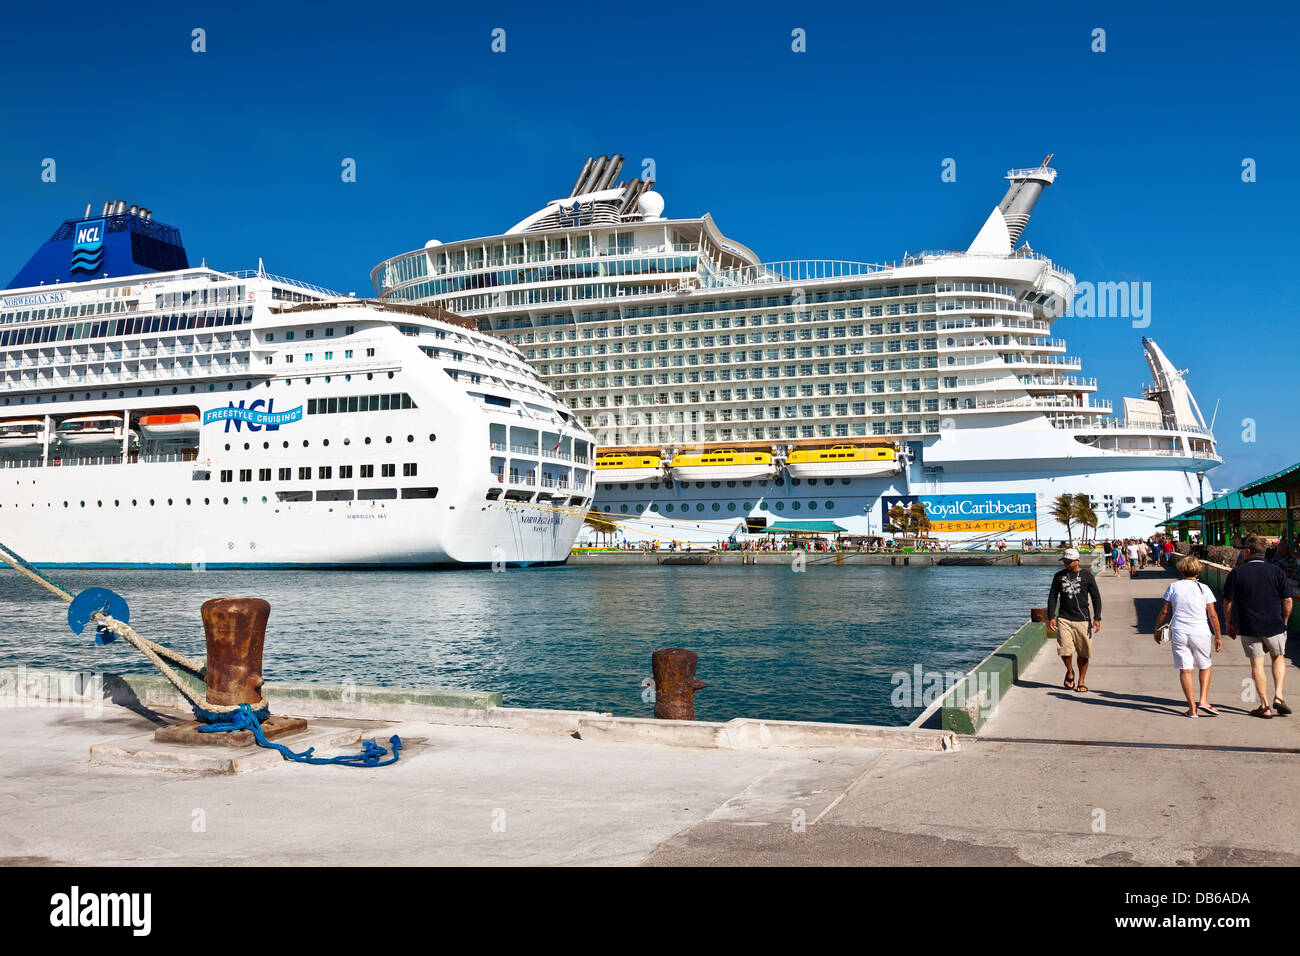 Nassau bahamas cruise port stock photo 58532246 alamy - Cruise port nassau bahamas ...